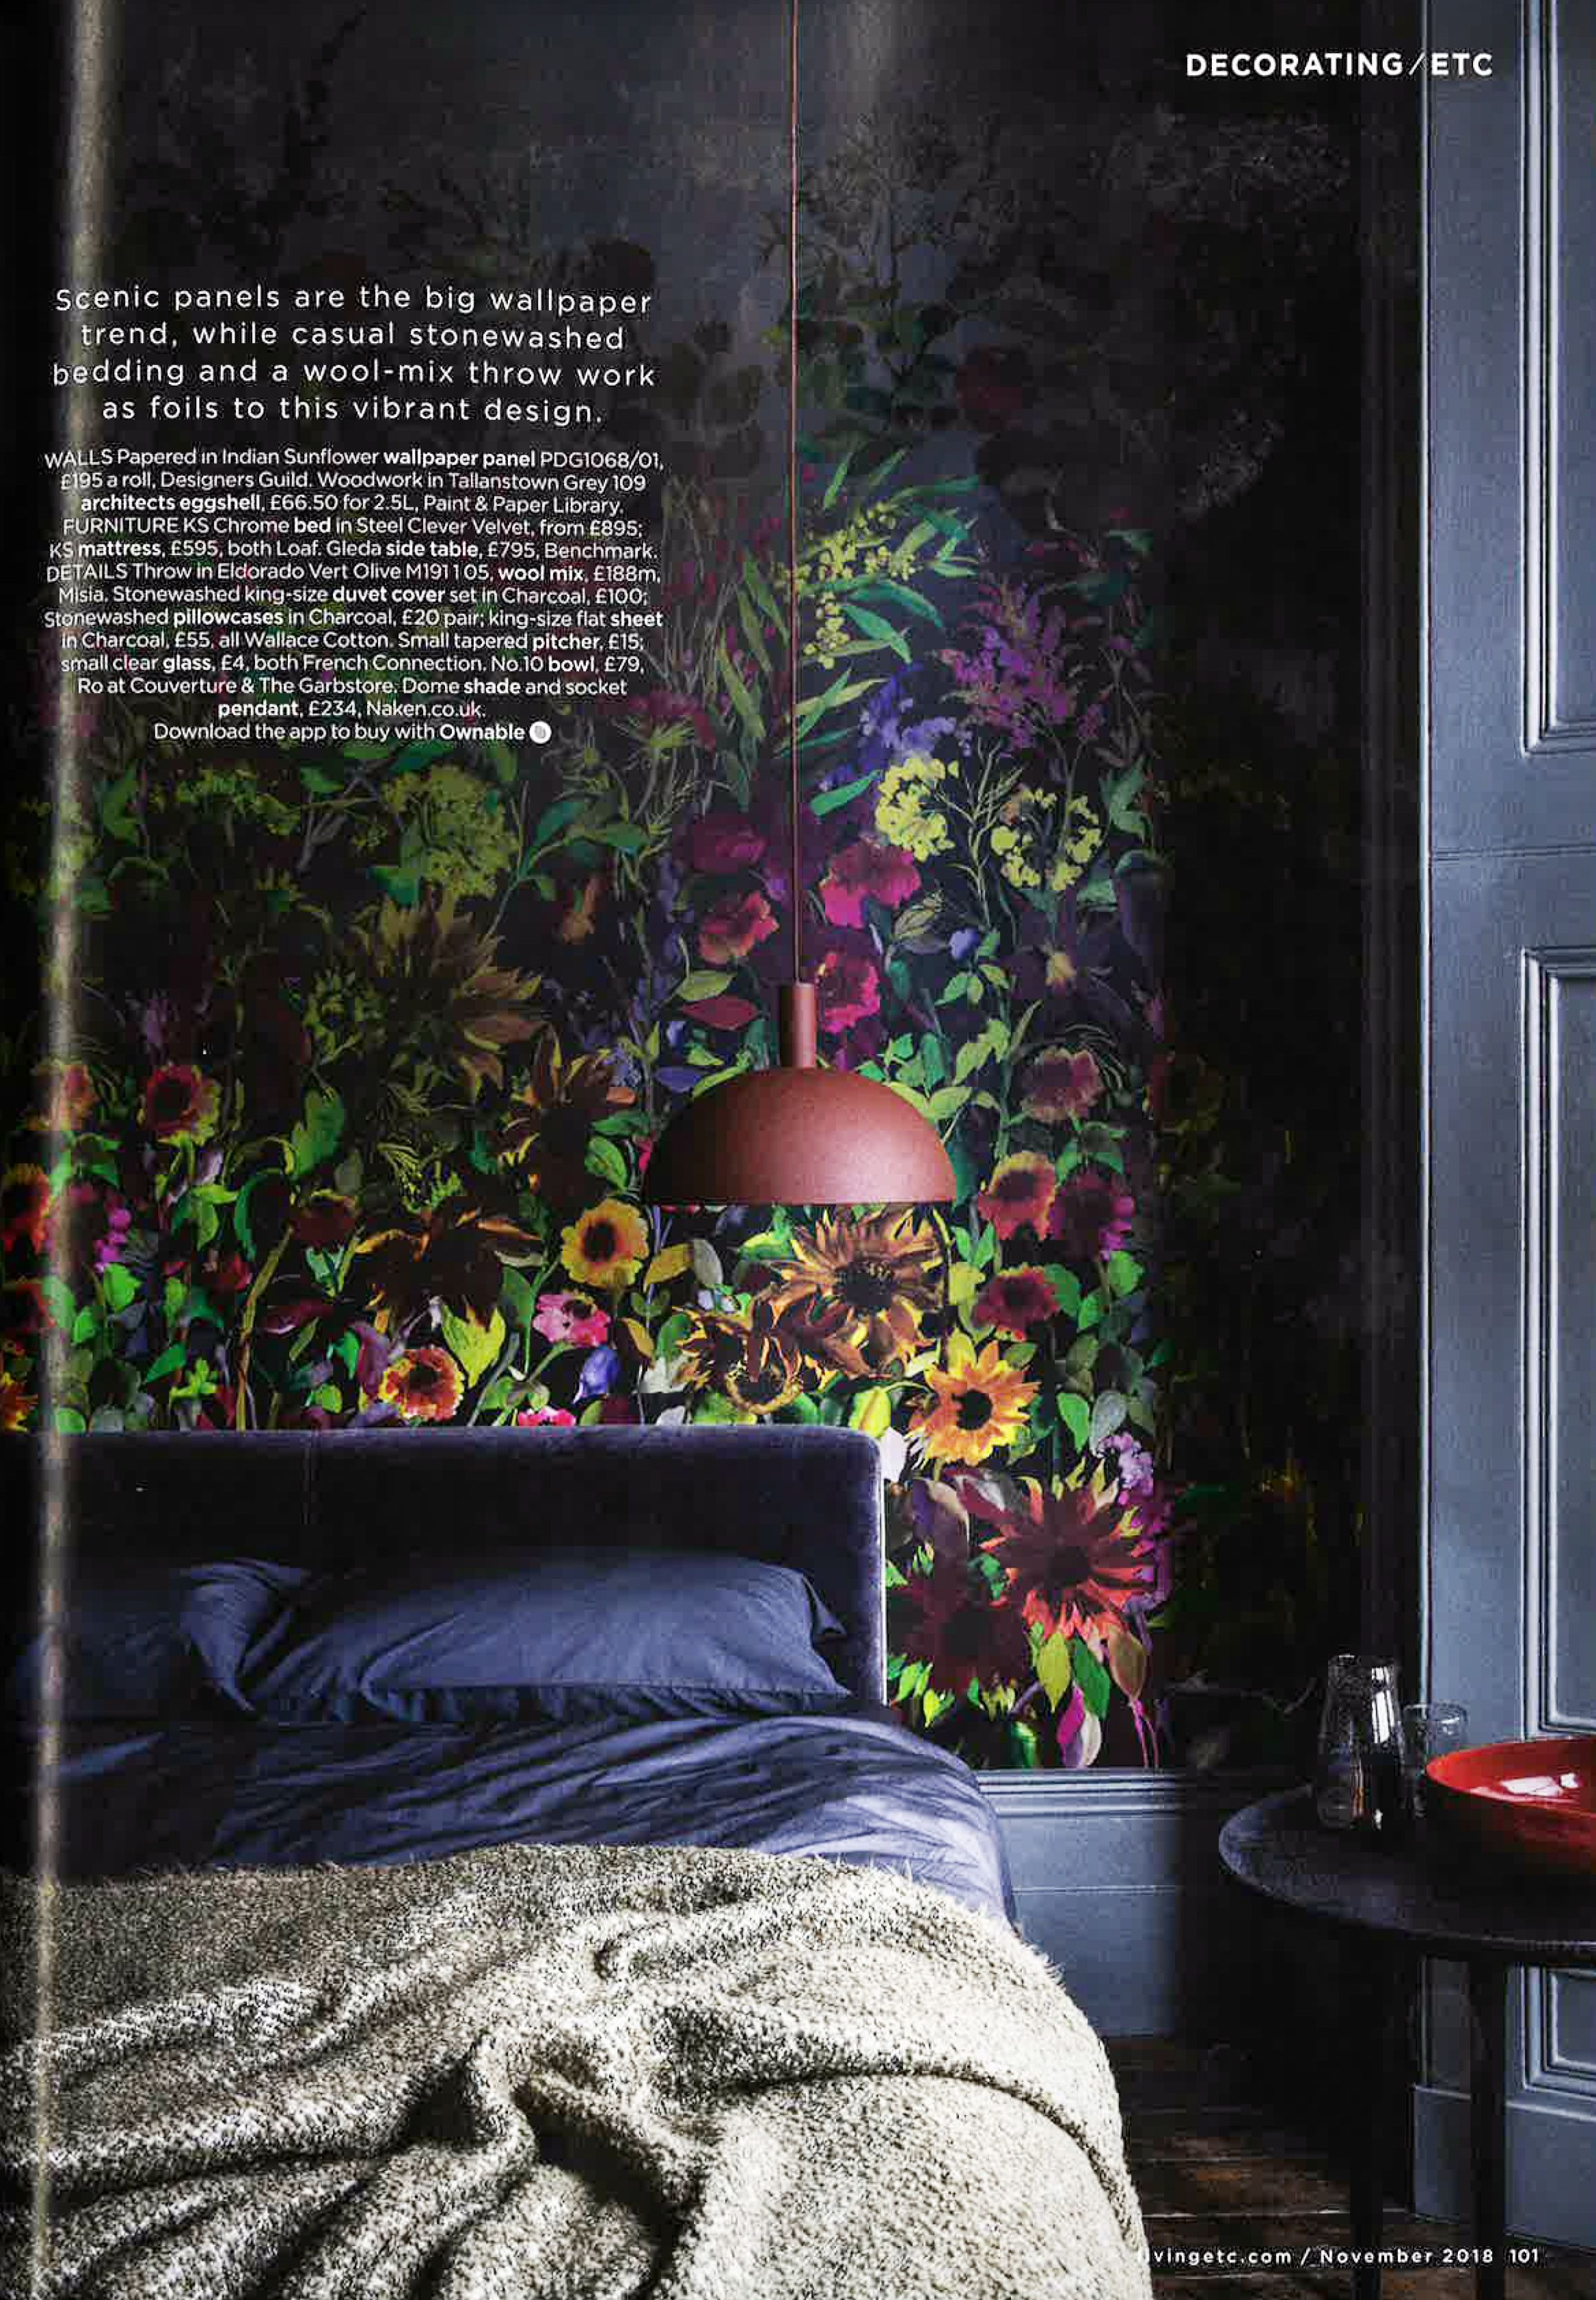 Add a dramatic and whimsical backdrop to your bedroom with